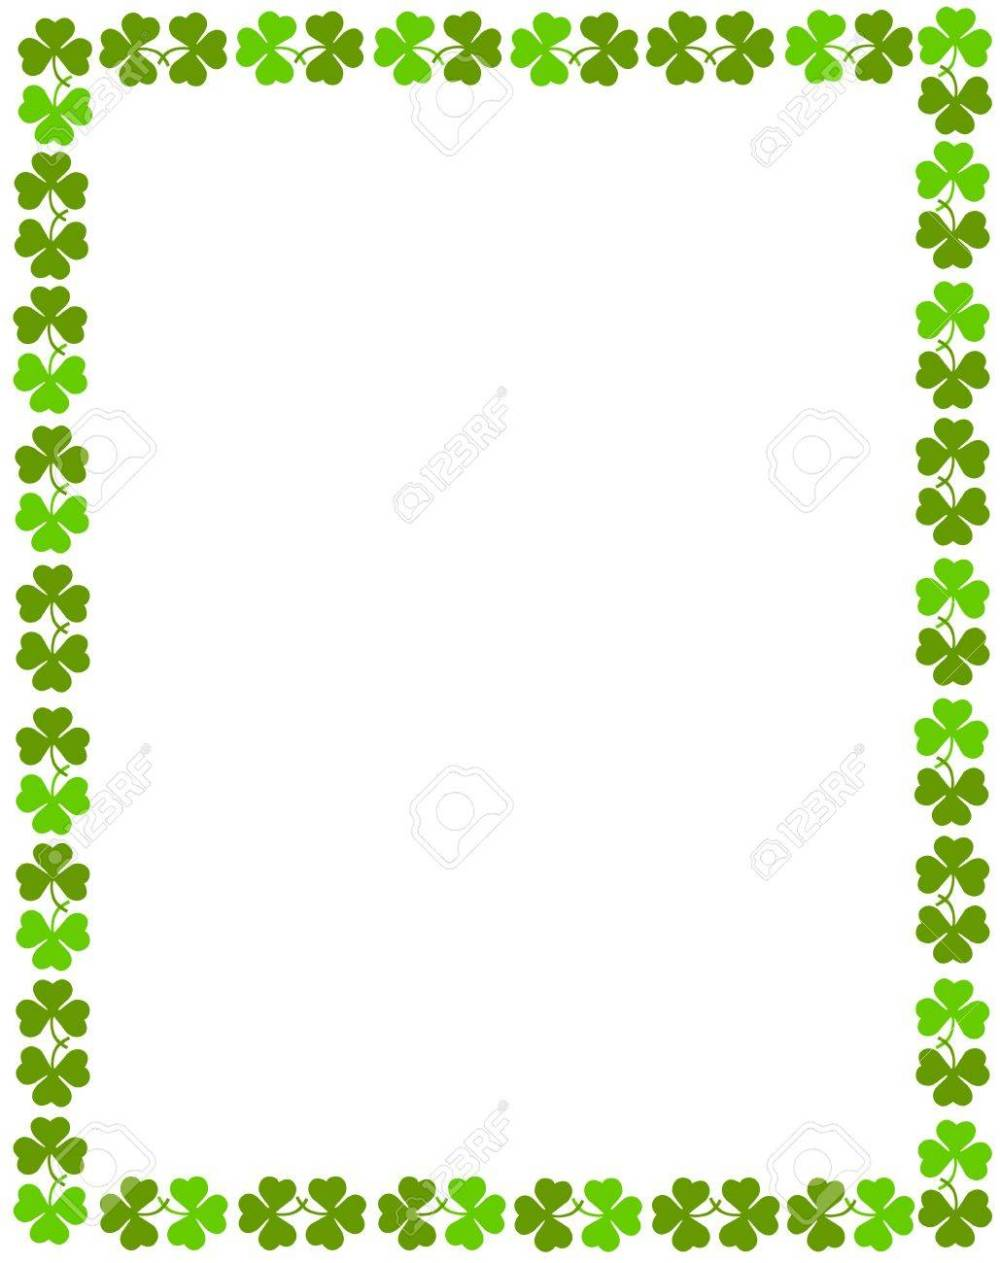 medium resolution of patrick s day background border stock vector 38909904